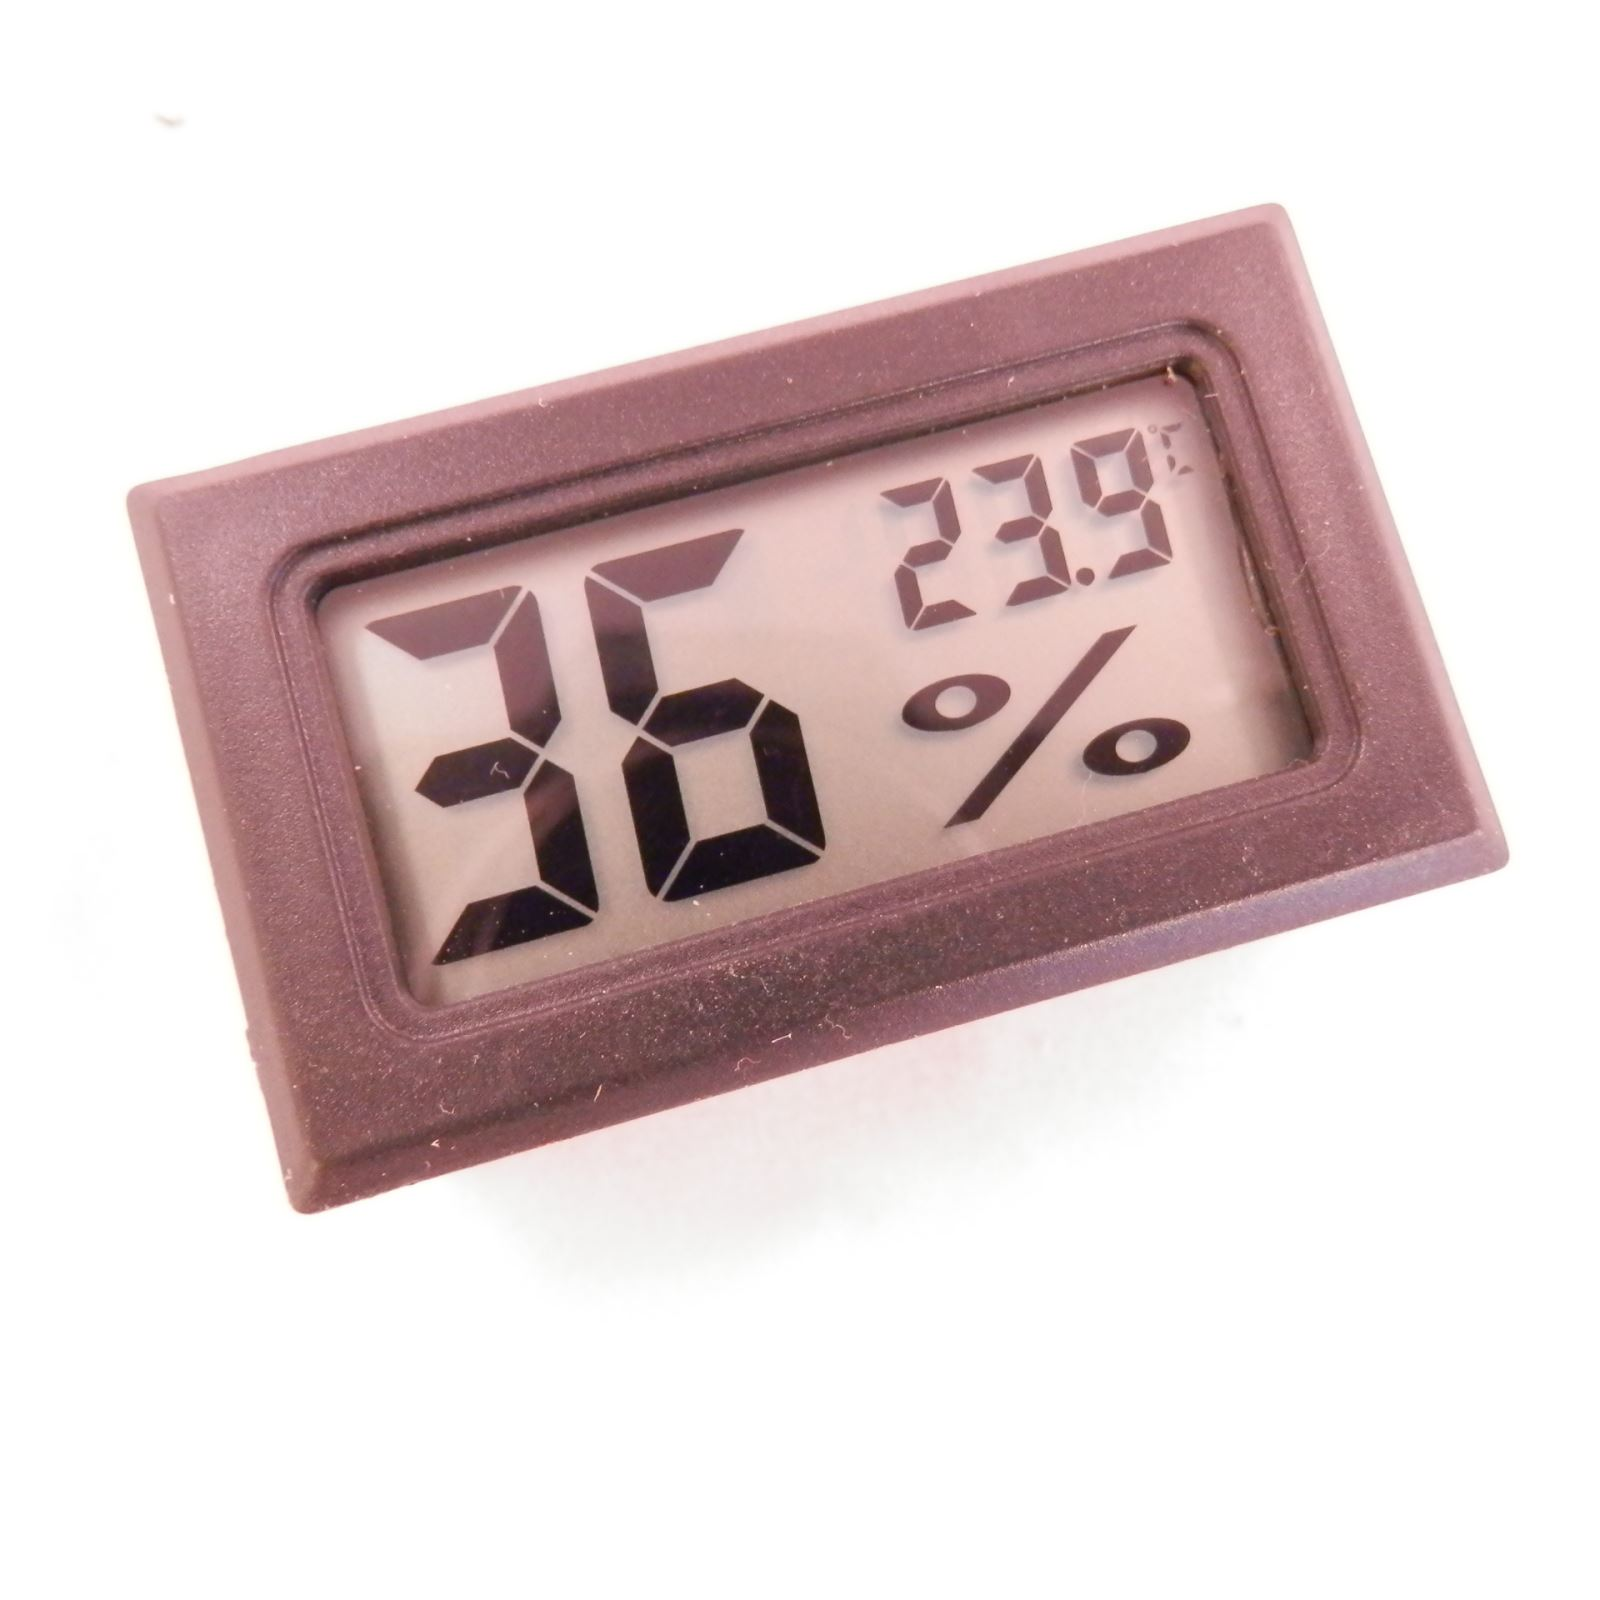 Digital LCD Thermometer Hygrometer Humidity Indoor Temperature Meter New Farbe=schwarz